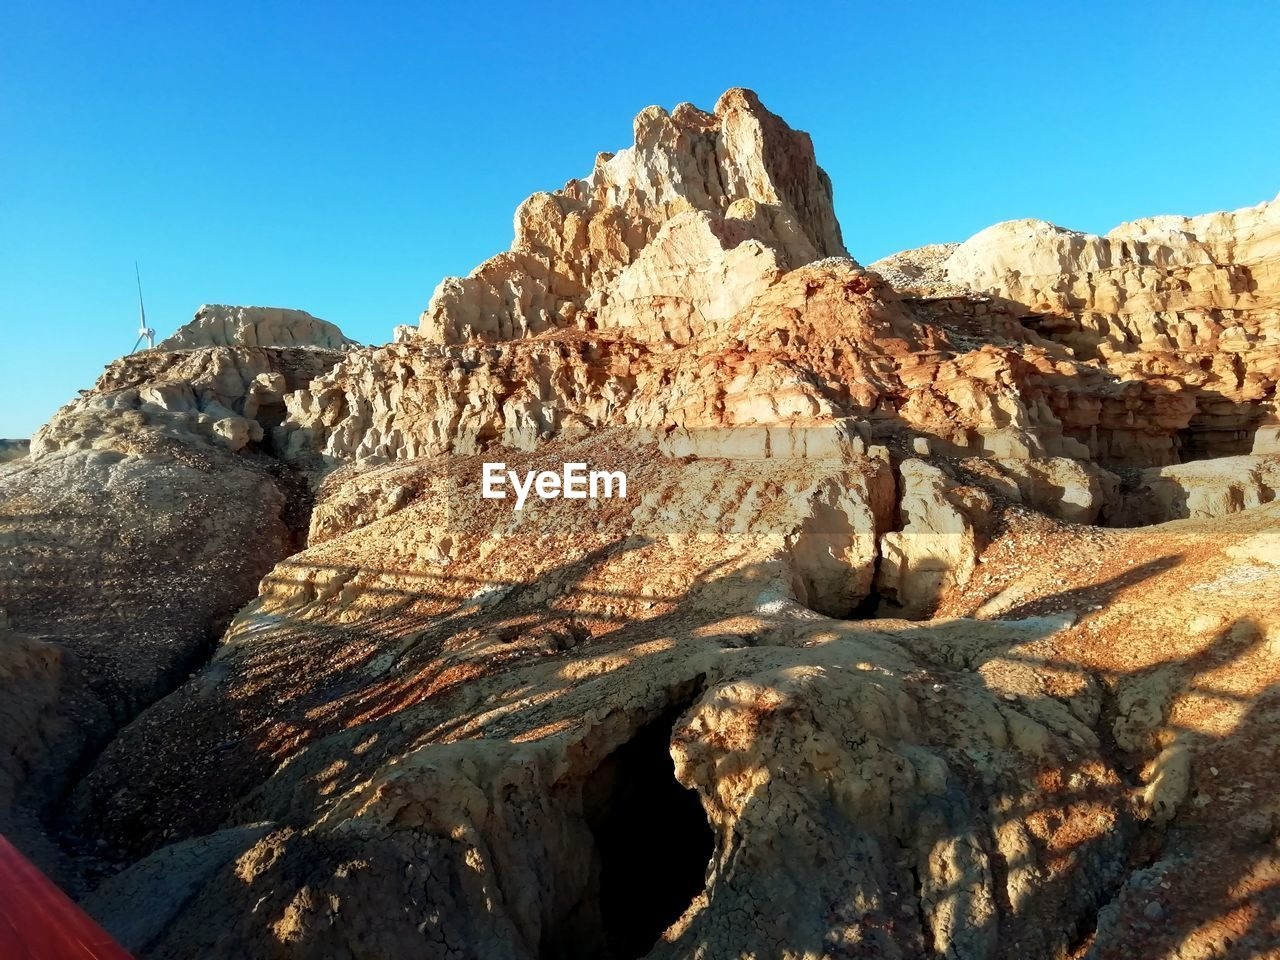 rock, rock - object, sky, solid, rock formation, geology, nature, physical geography, clear sky, scenics - nature, beauty in nature, tranquil scene, tranquility, no people, mountain, sunlight, day, non-urban scene, rough, blue, eroded, mountain range, formation, outdoors, arid climate, climate, mountain peak